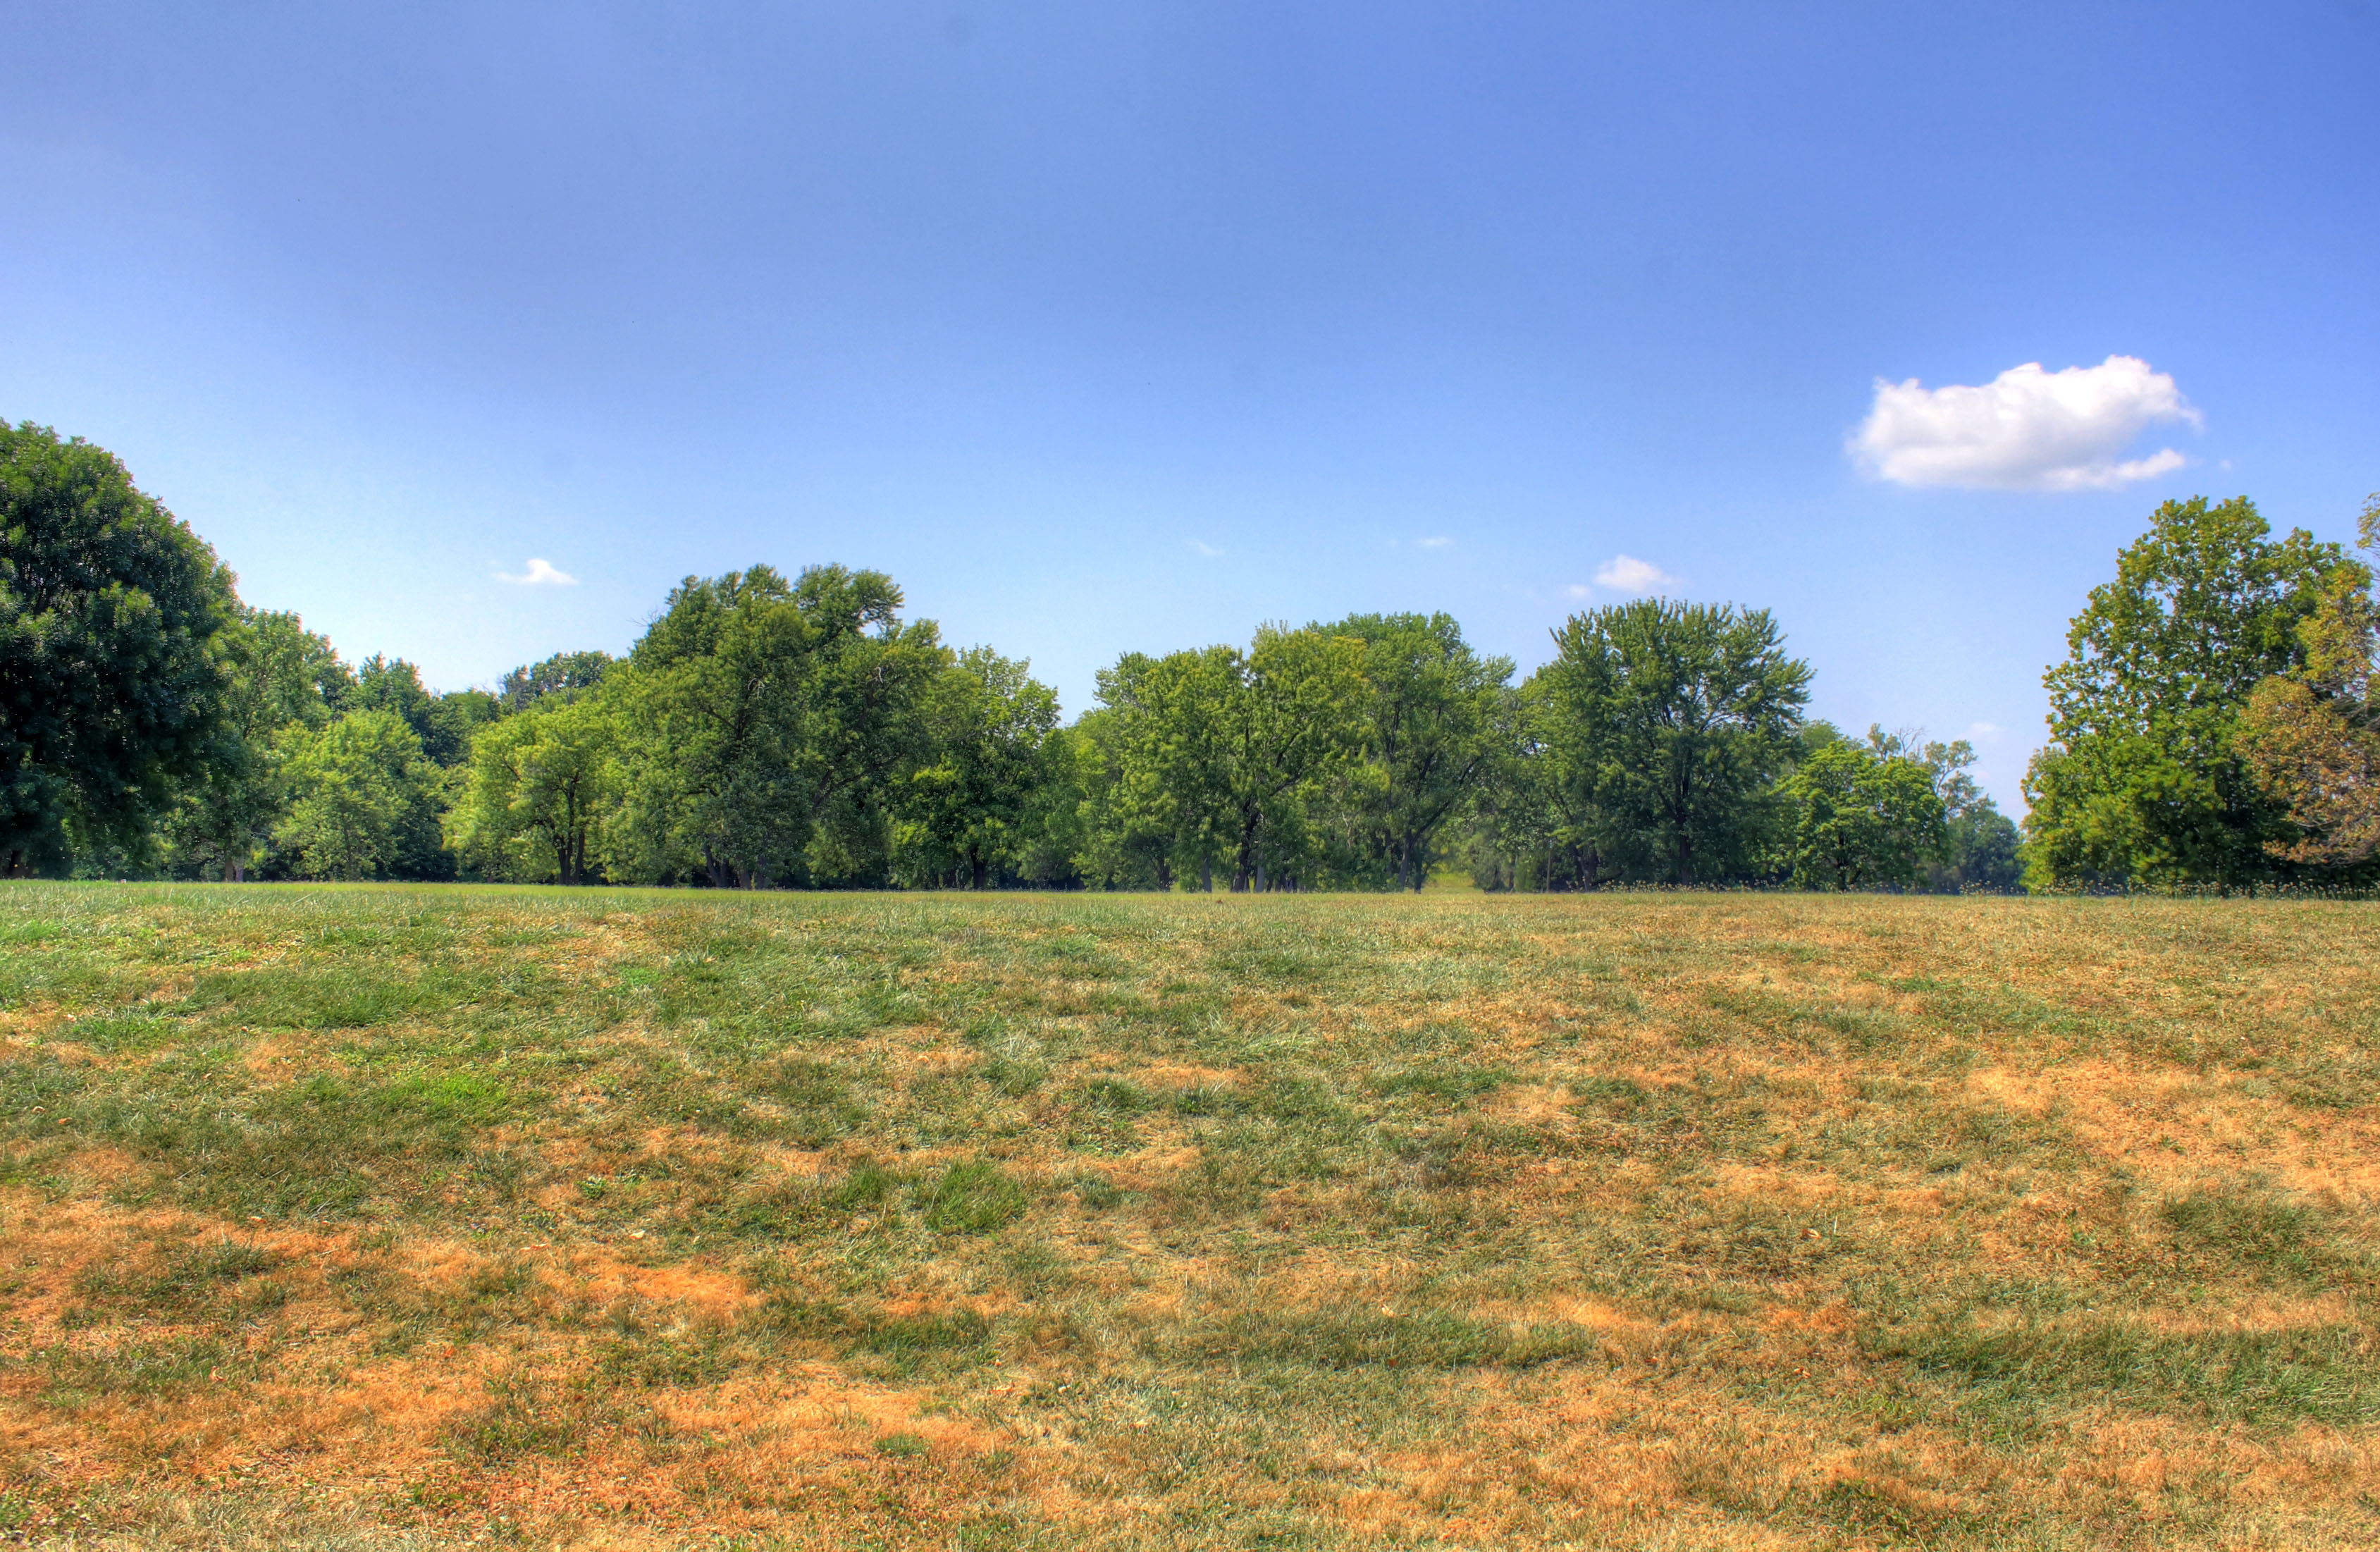 Looking at a small Mound at Cahokia Mounds, Illinois image